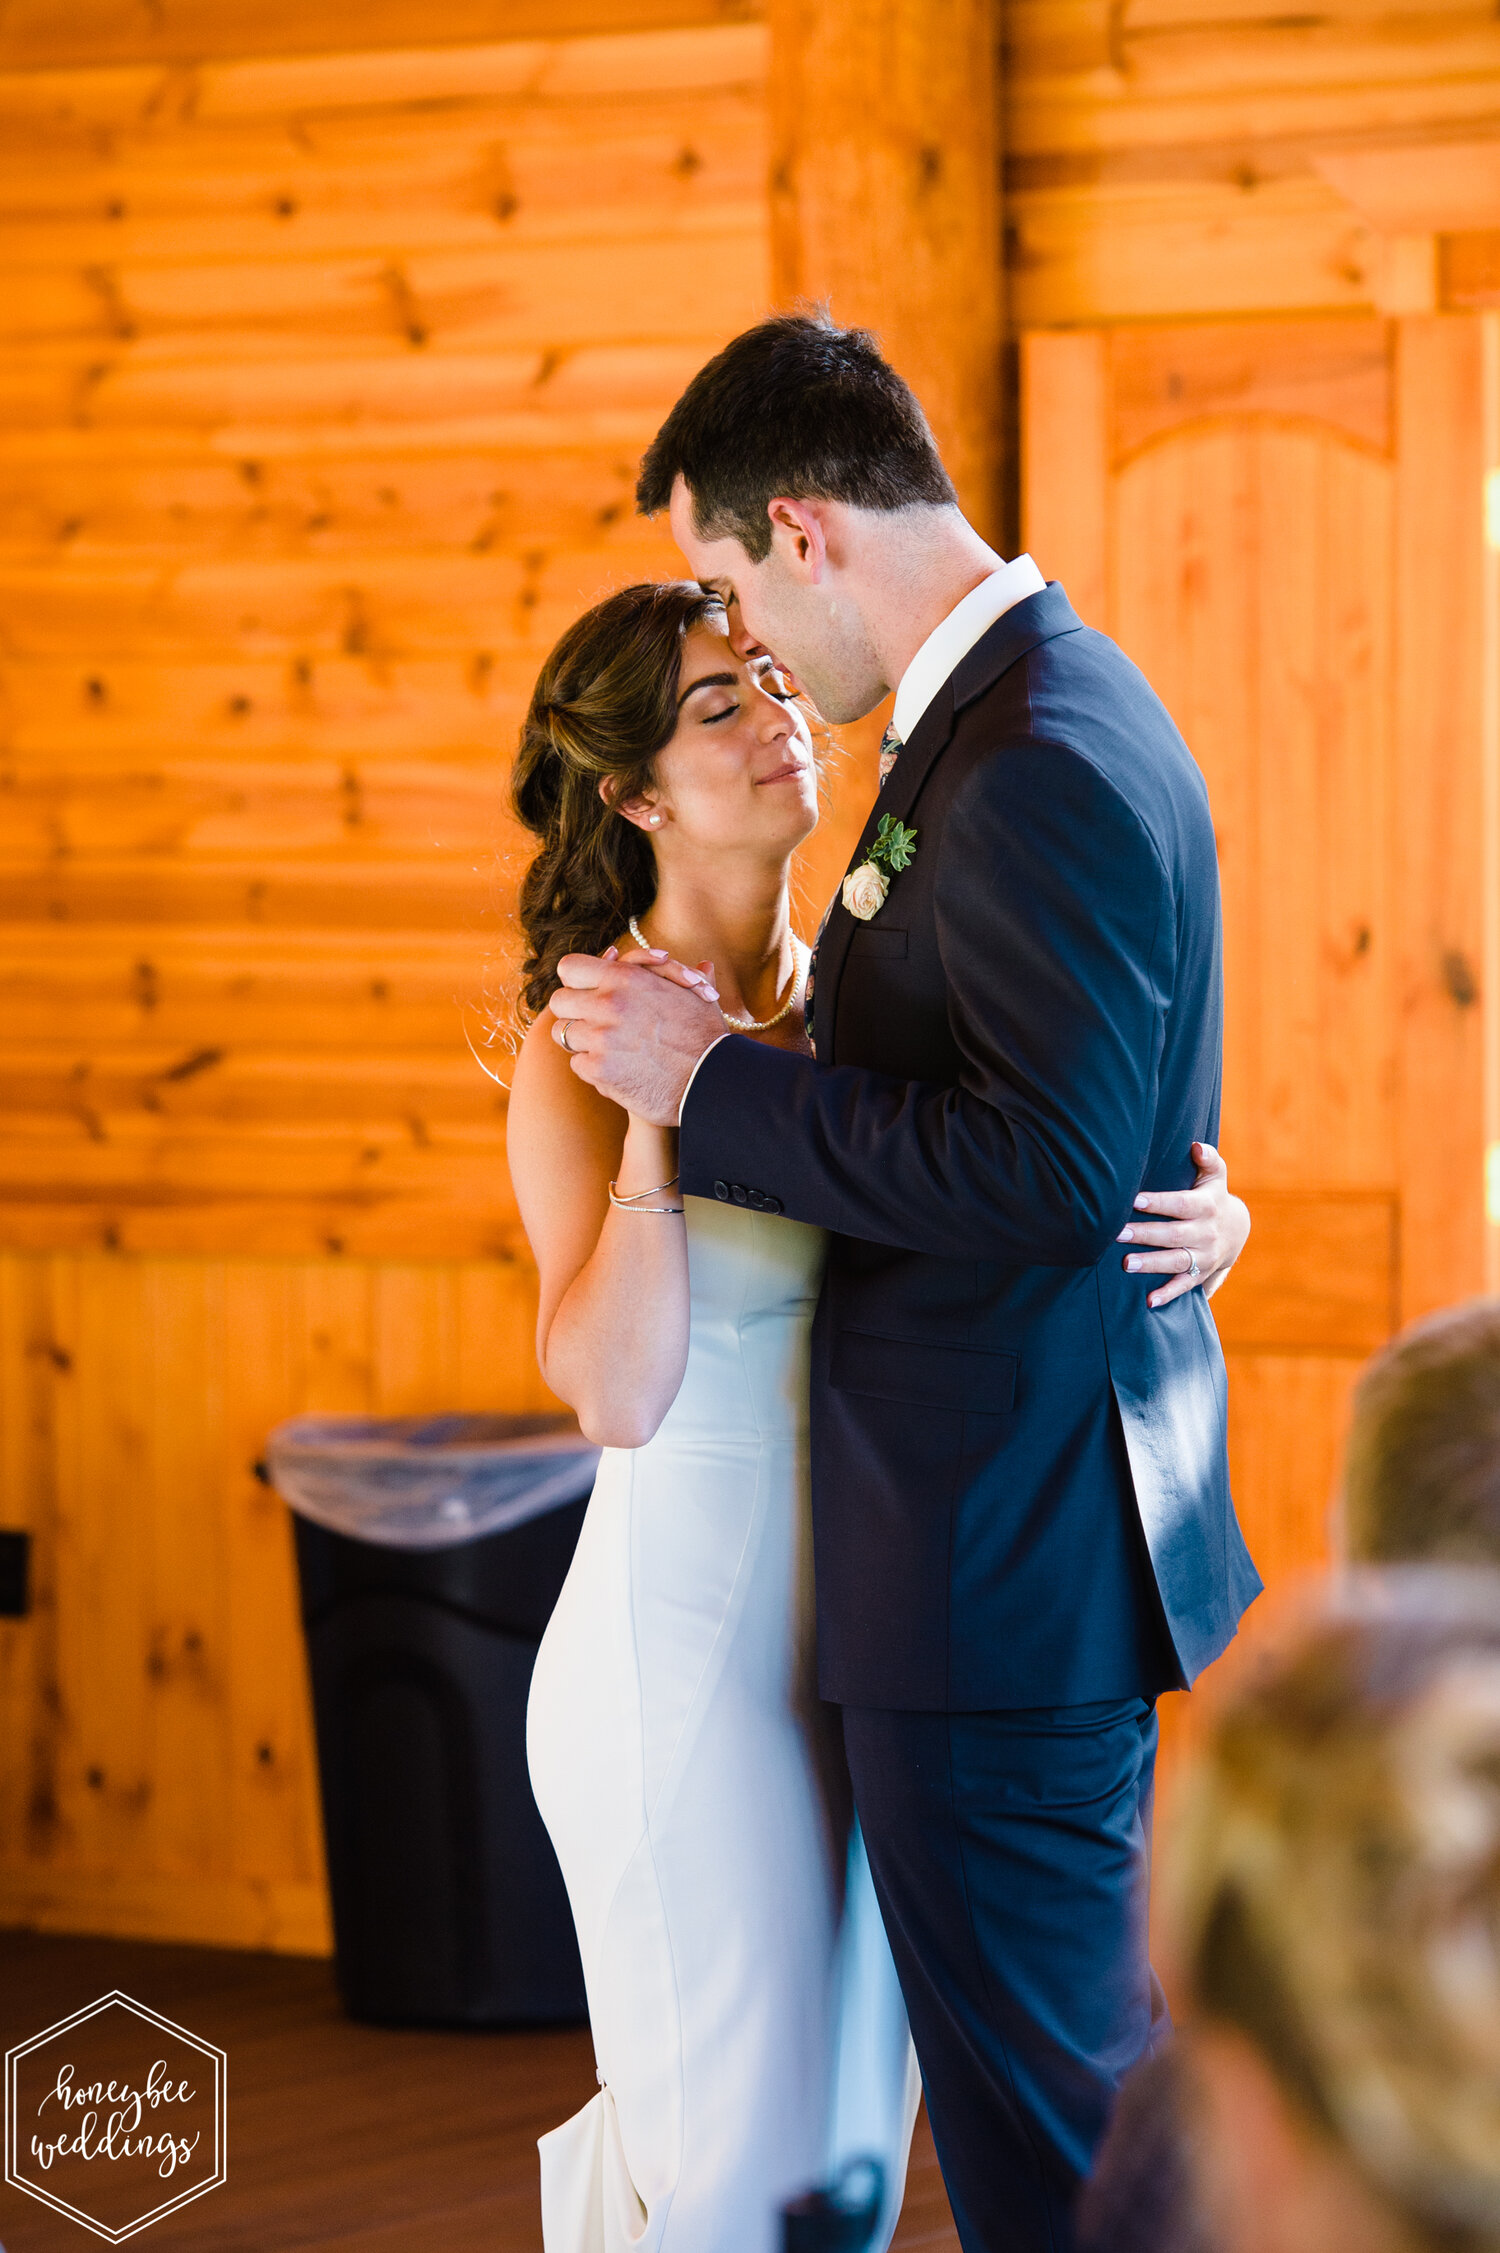 120Glacier National Park Wedding_Glacier Outdoor Center_Honeybee Weddings_Anna & Seth_July 21, 2019-417.jpg